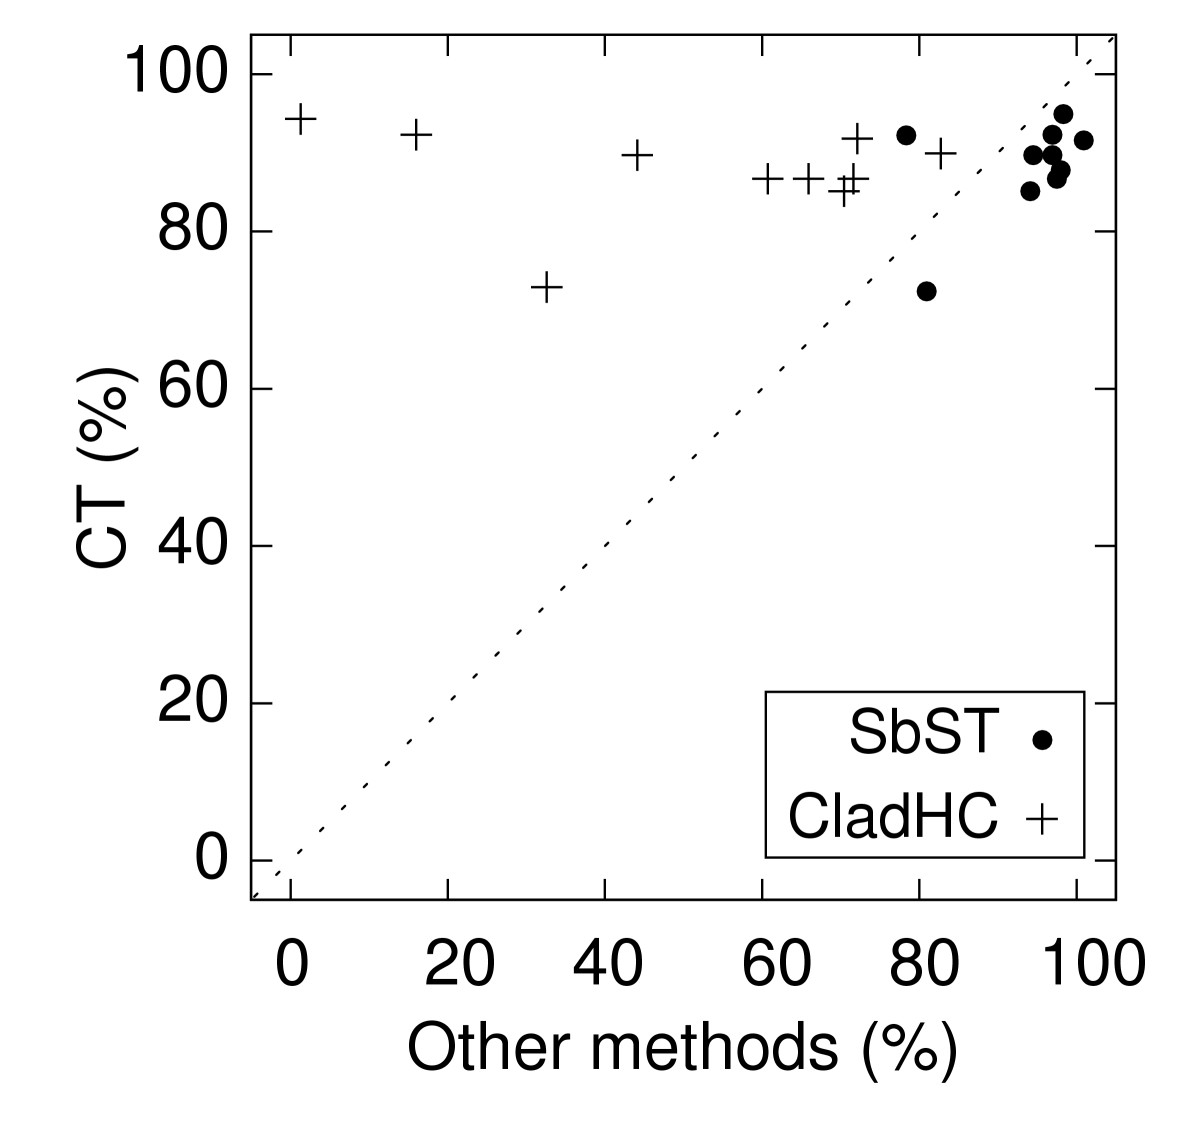 https://static-content.springer.com/image/art%3A10.1186%2F1471-2156-6-24/MediaObjects/12863_2005_Article_230_Fig1_HTML.jpg